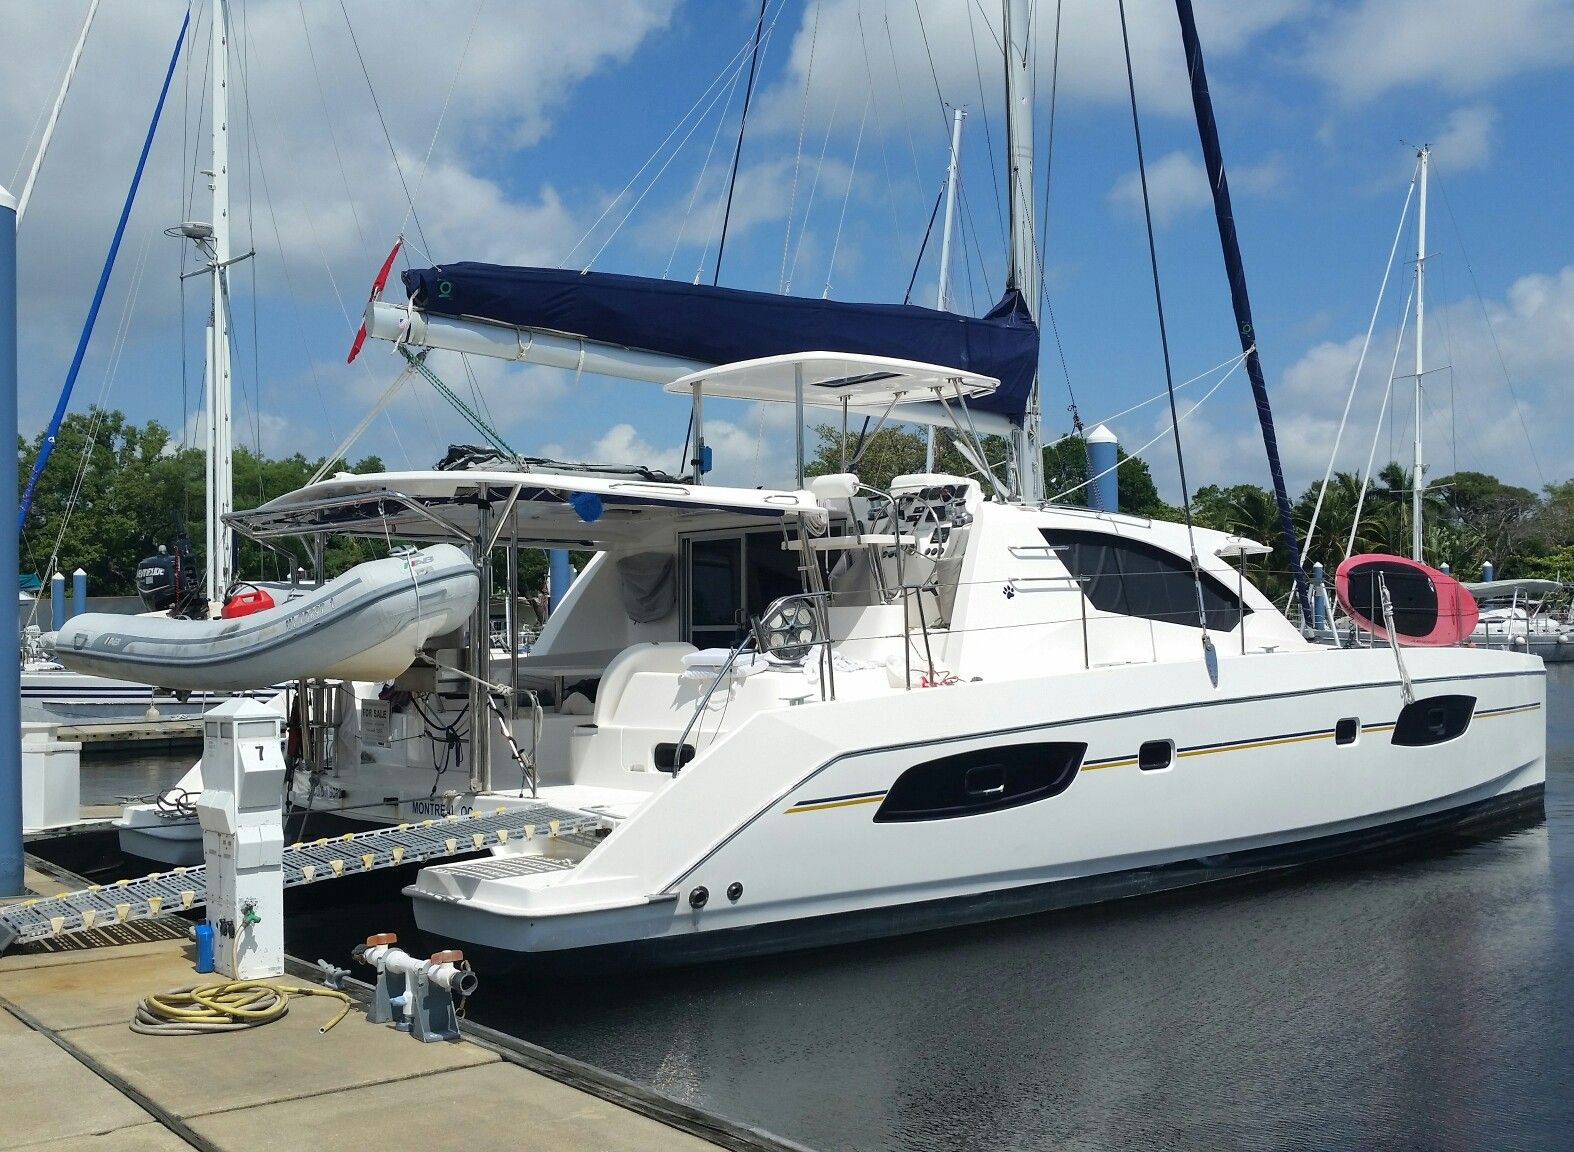 Sunsail 444 for sale - Best Equipped Leopard 44 Owner S Version Catamaran For Sale For More Details Contact Caroline